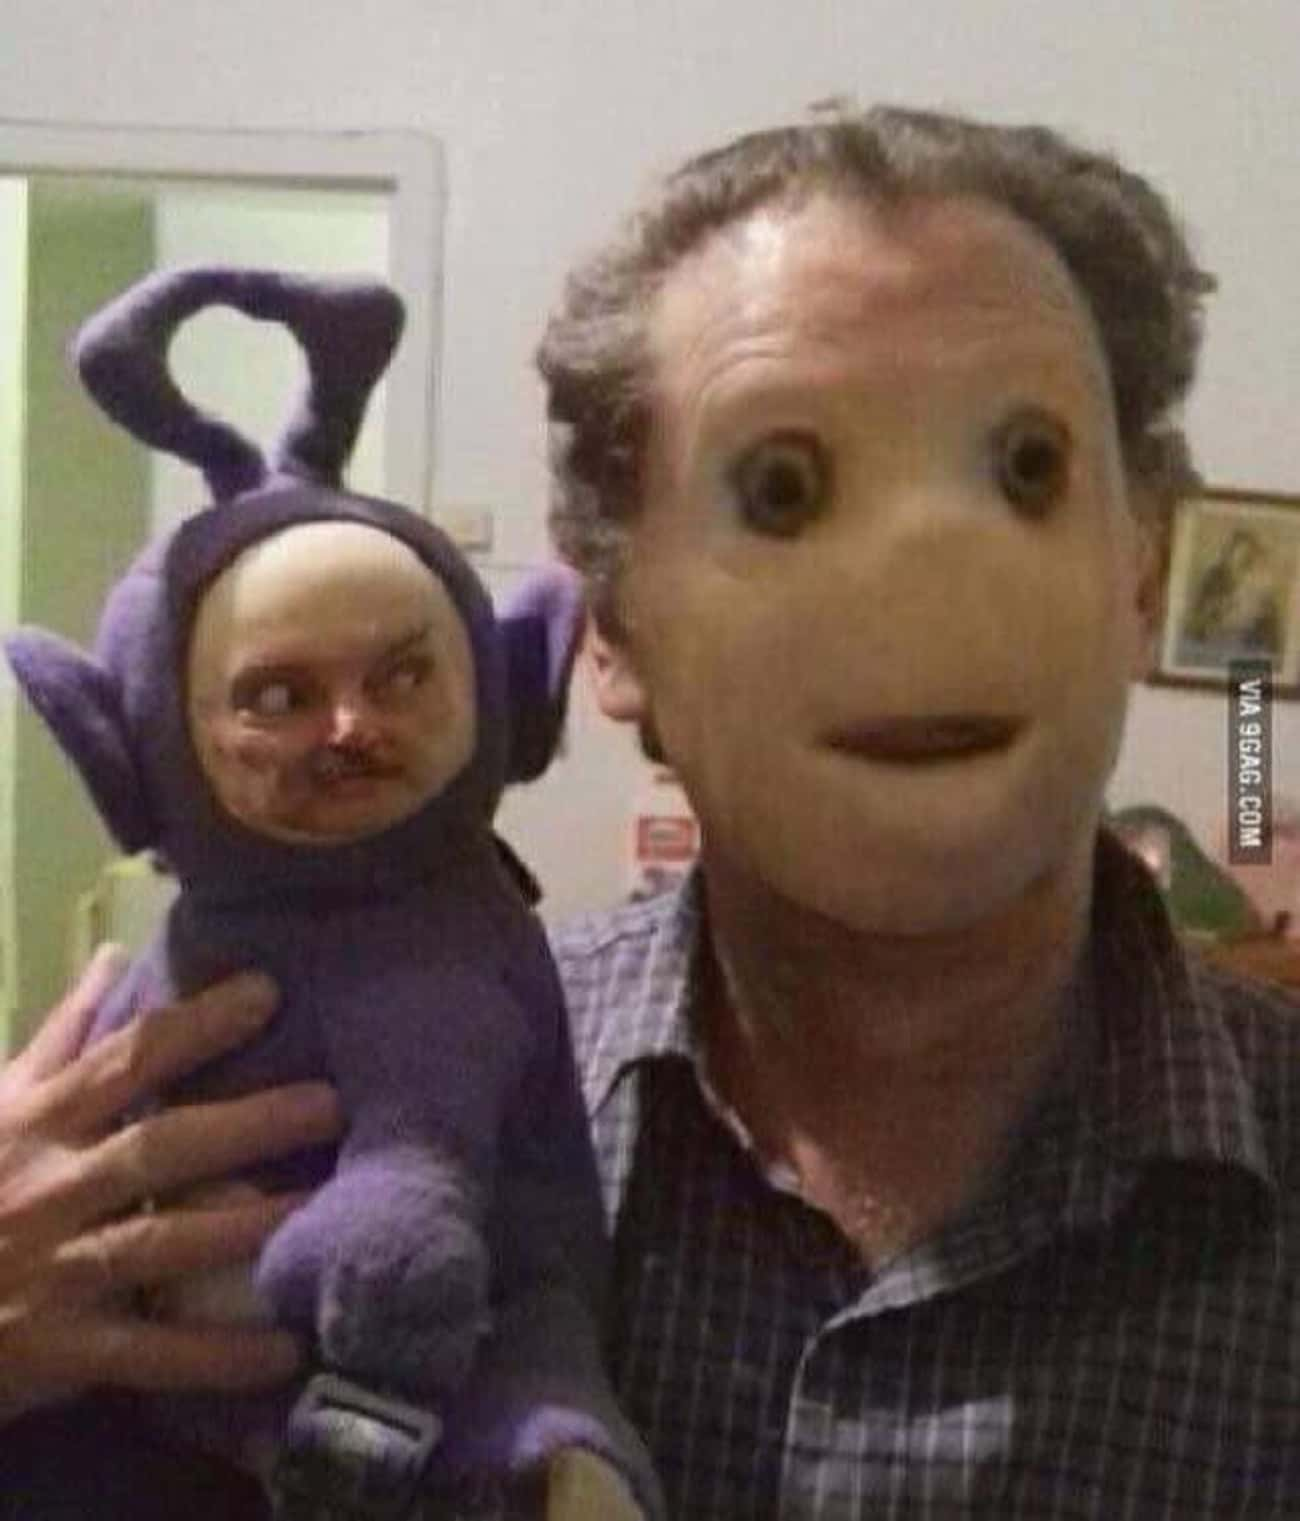 Terror Tubby is listed (or ranked) 1 on the list 25 Horrifying Face Swaps That Will Fuel Your Nightmares